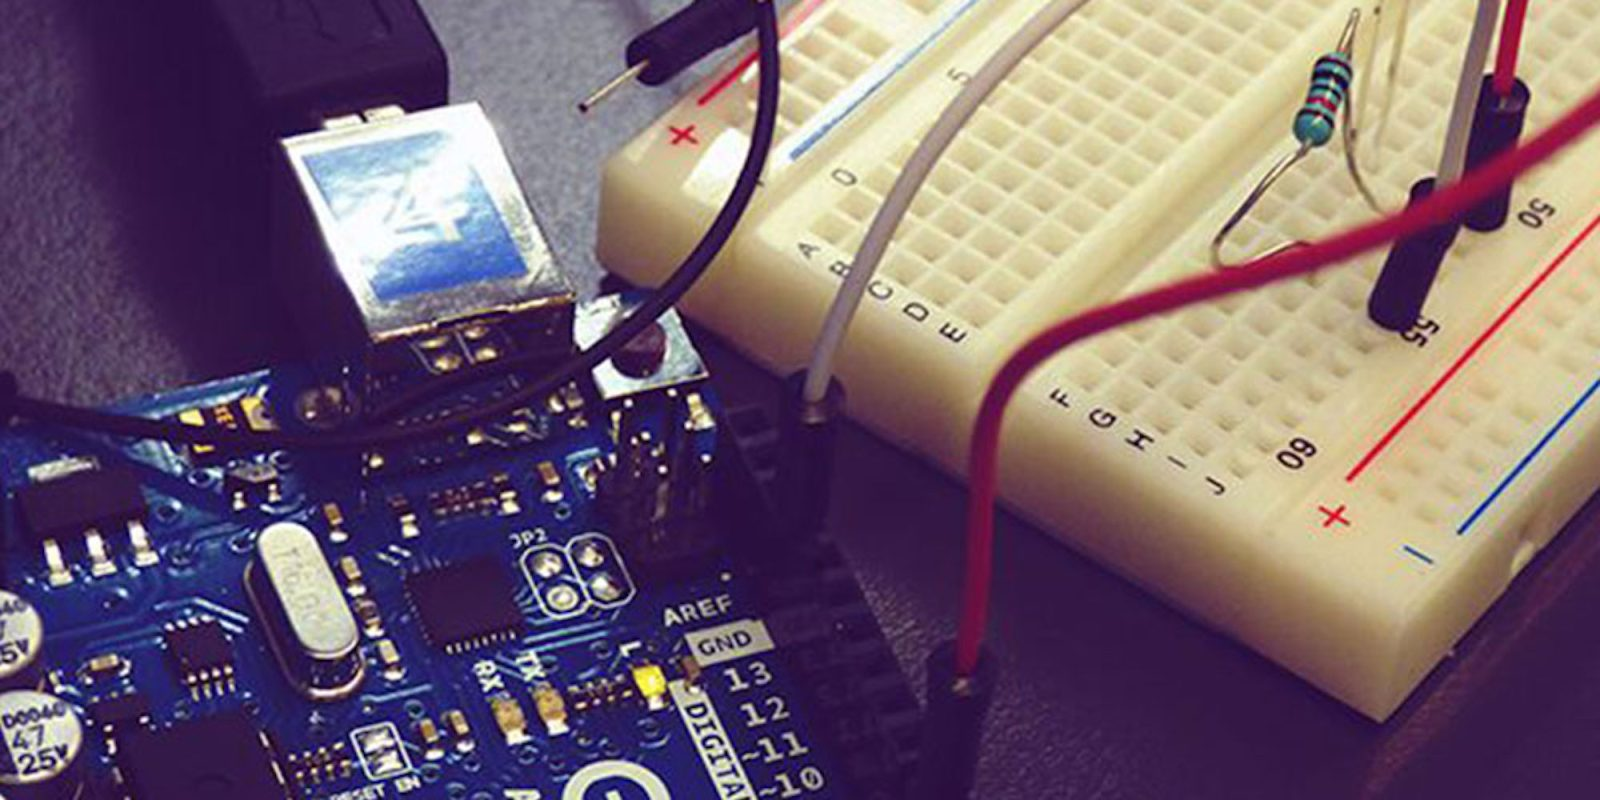 Get this Arduino Starter Kit and 16 hours of instruction for